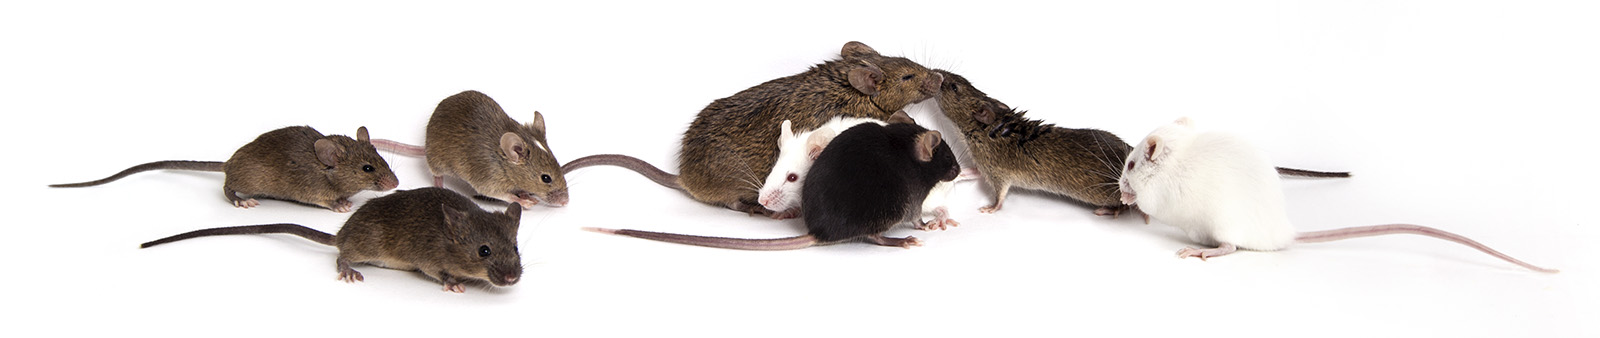 Unlike inbred strains, Diversity Outbred (DO) mice are genetically diverse, allowing more accurate modeling of the human population.